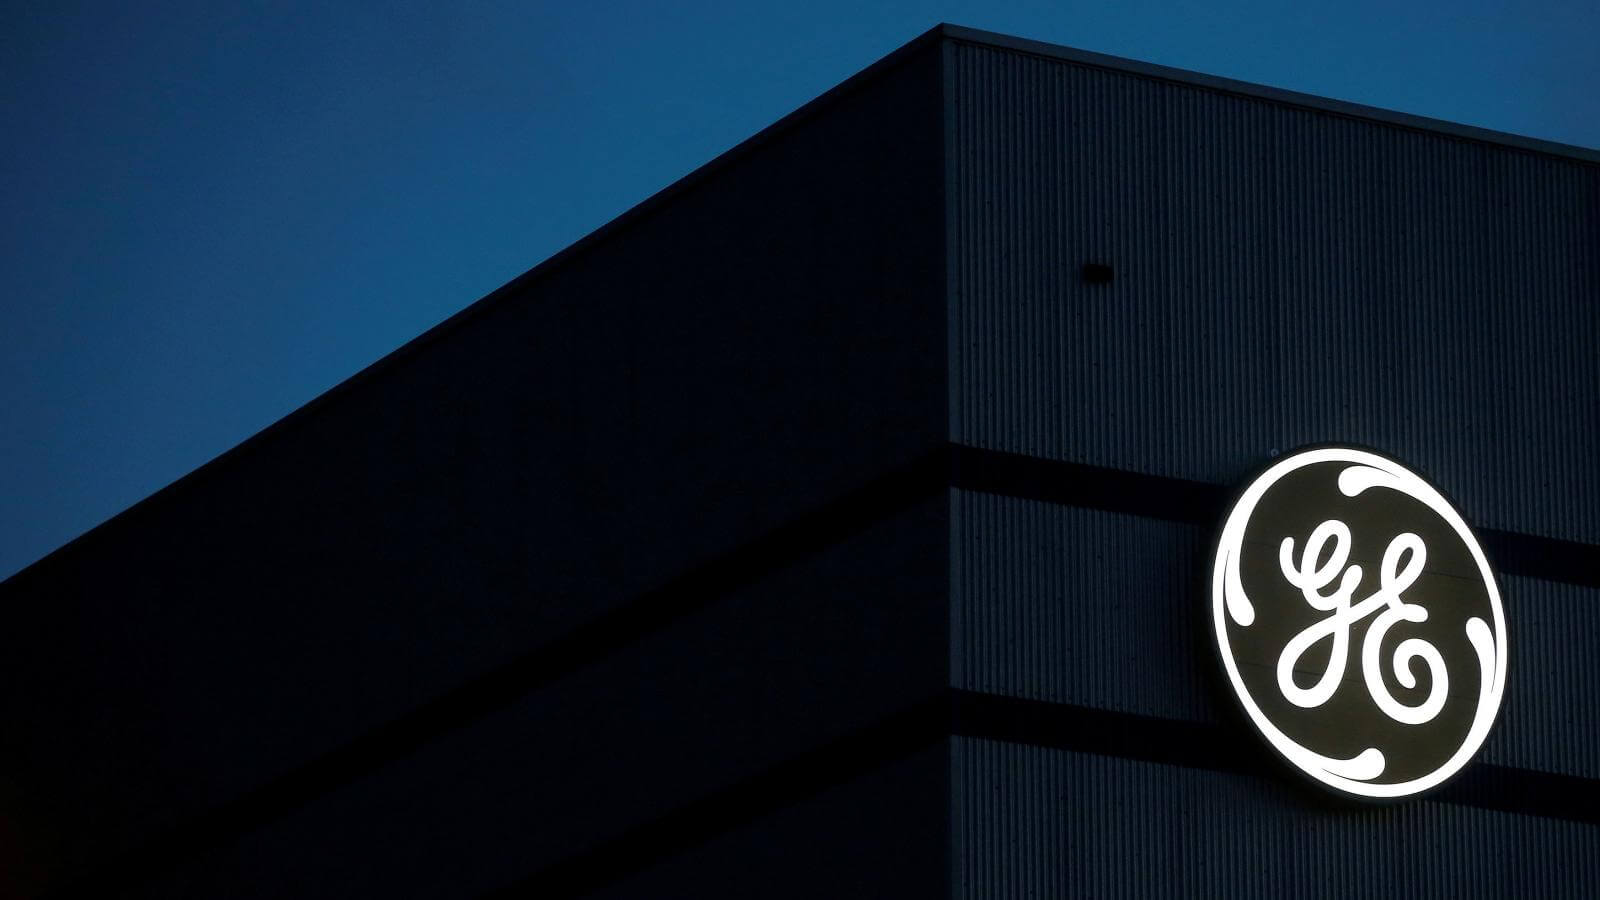 GE Plans to Sell Biopharma Business to Danaher for 21 Billion